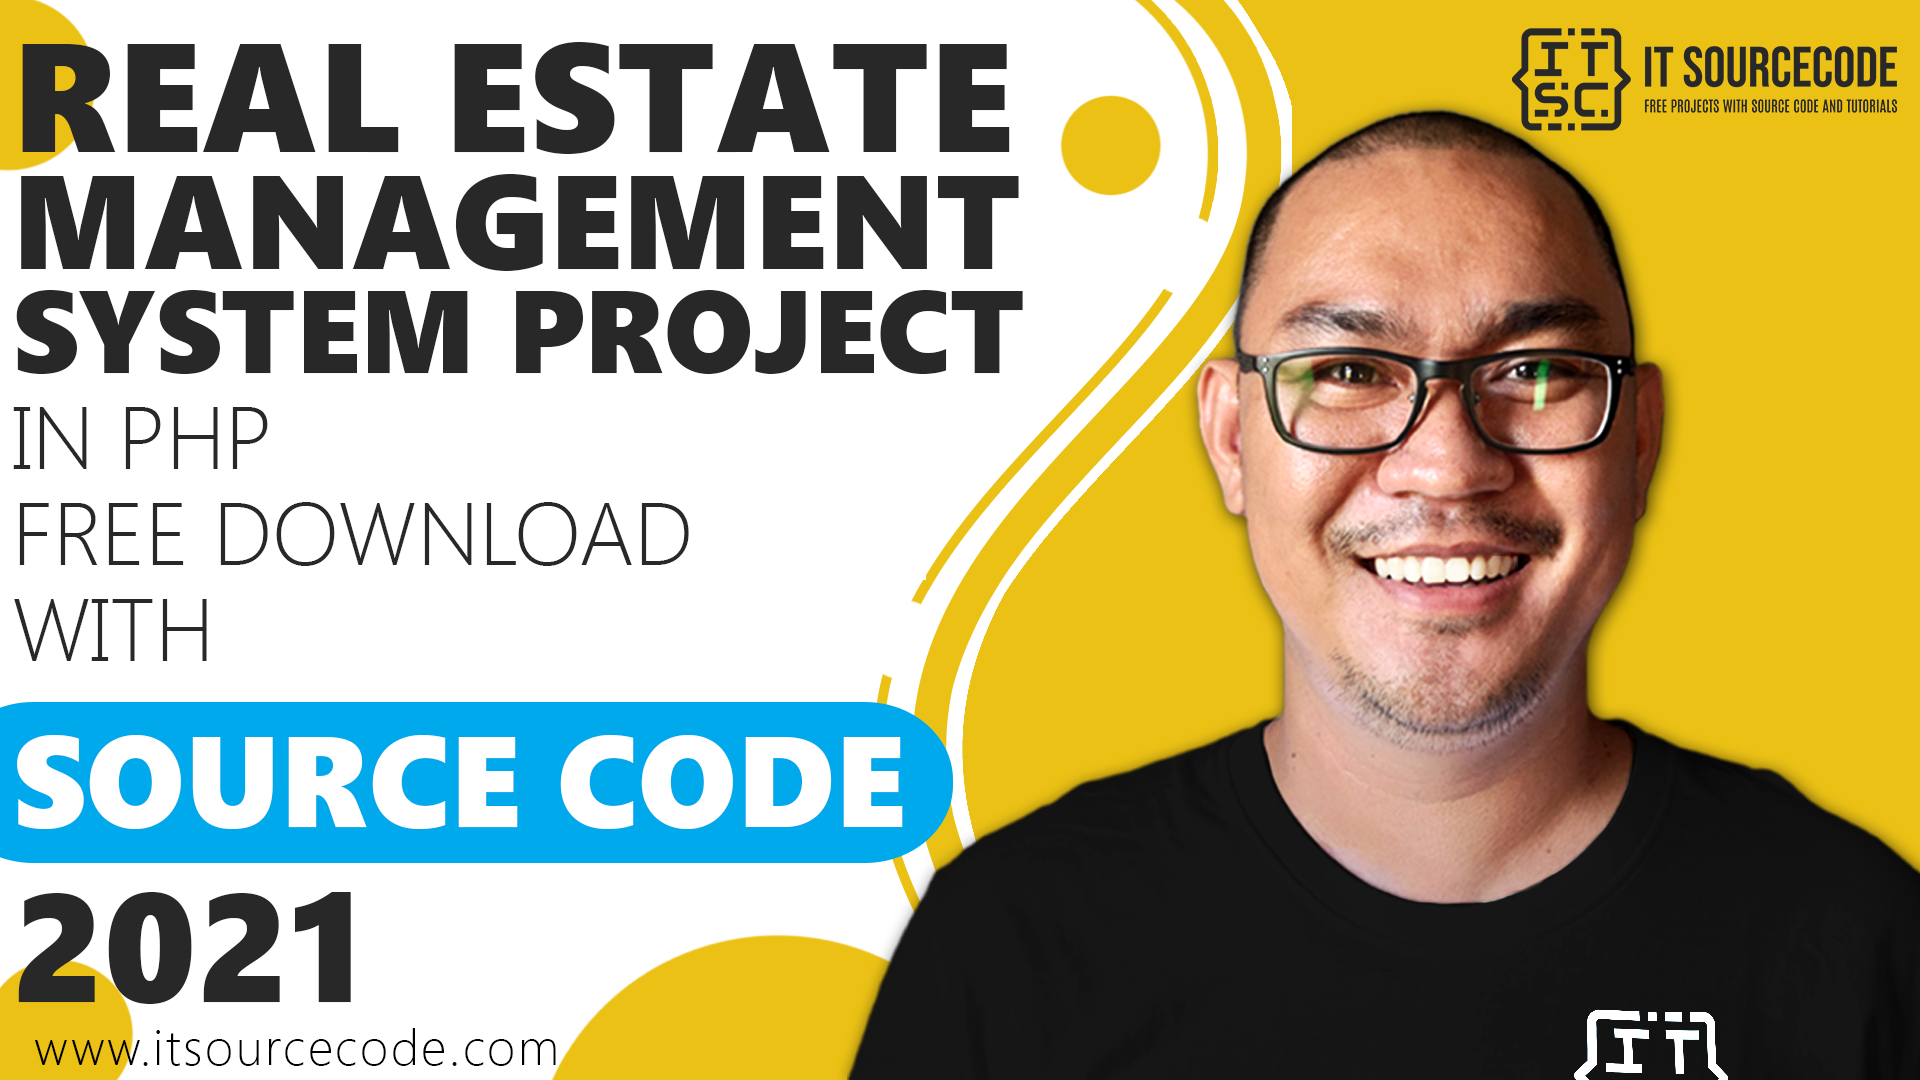 Real Estate Management System Project In PHP Free Download